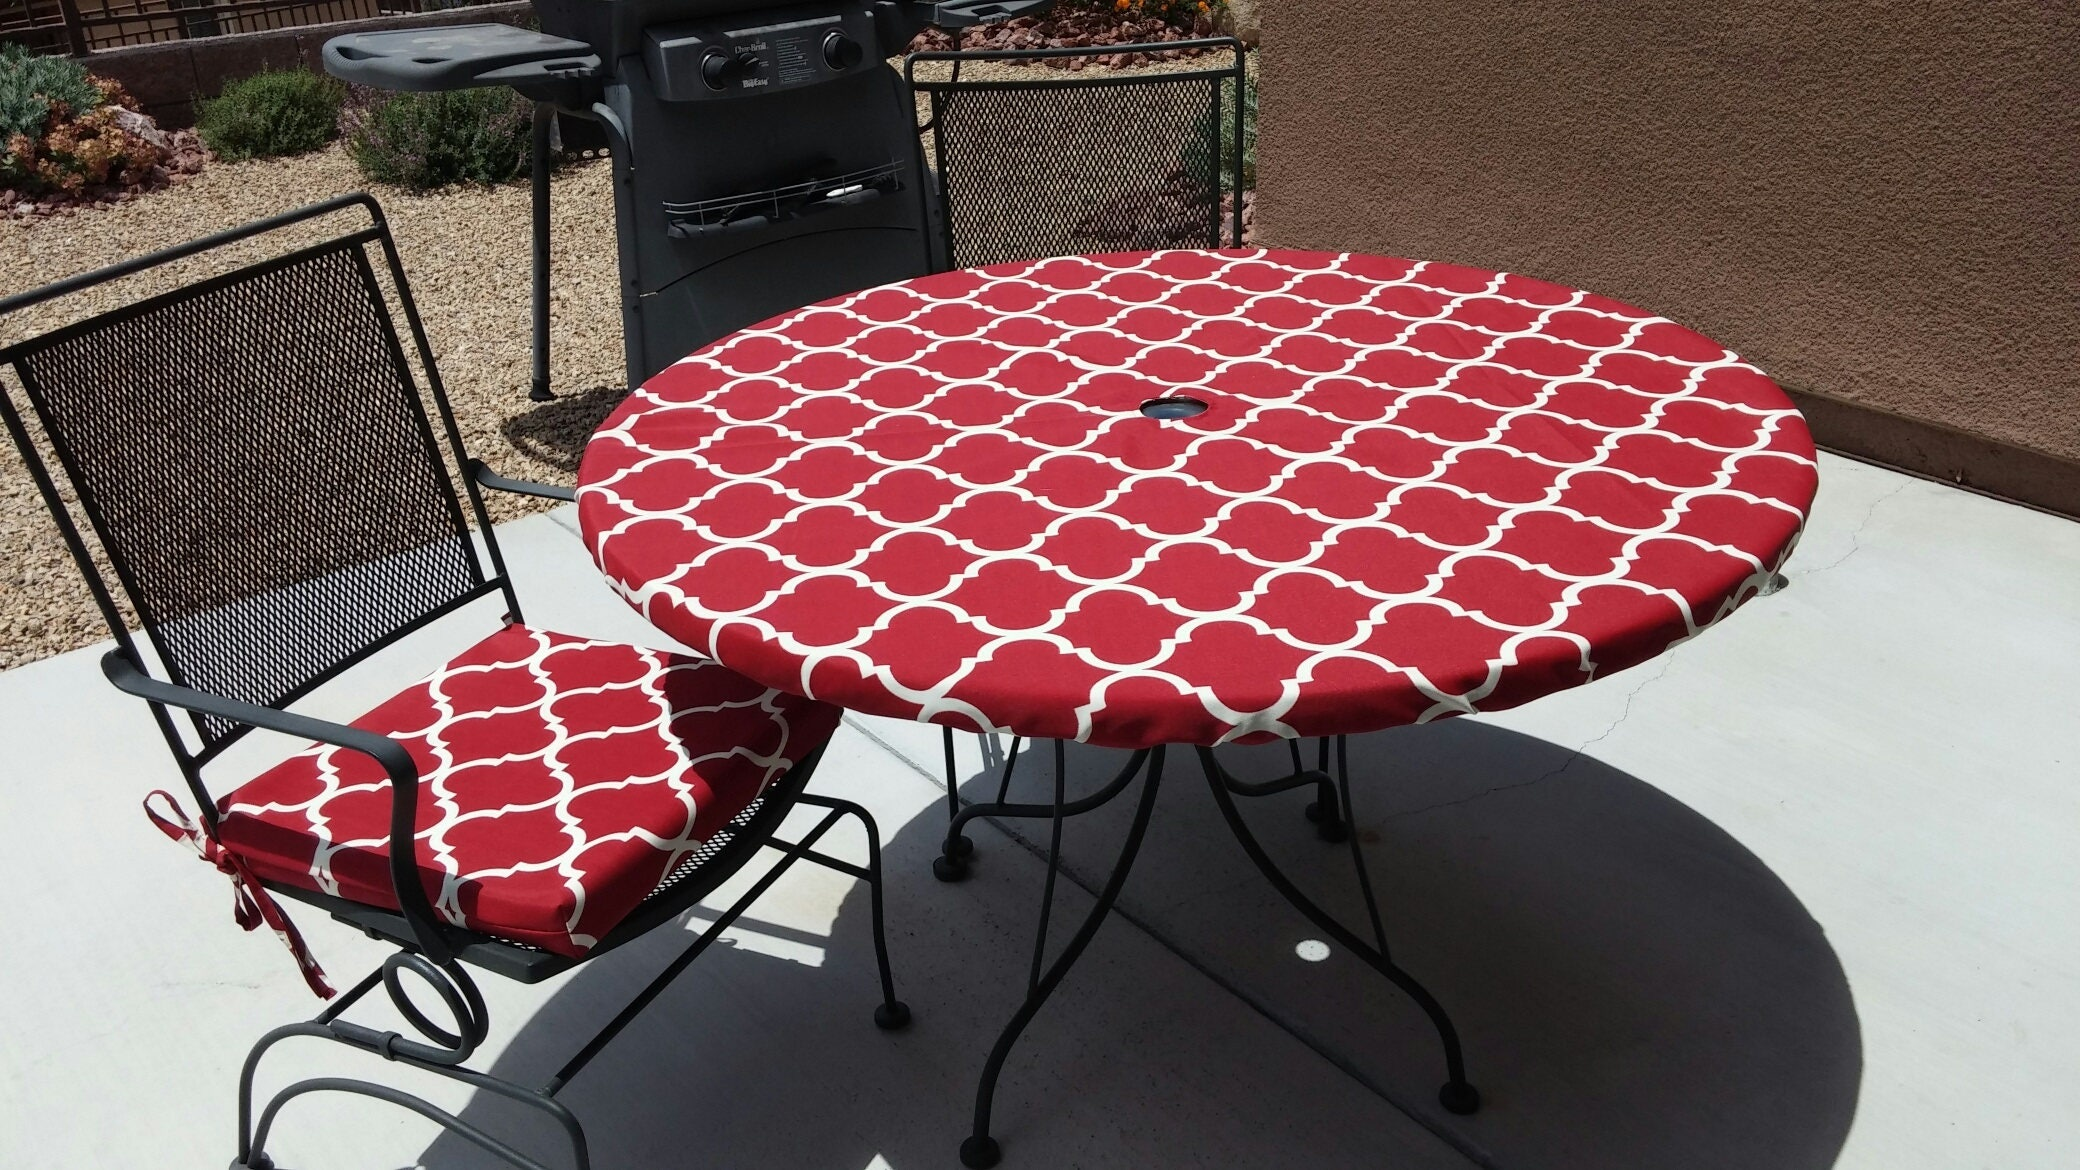 Round Fitted Tablecloth For Outdoor Dining With Umbrella Hole